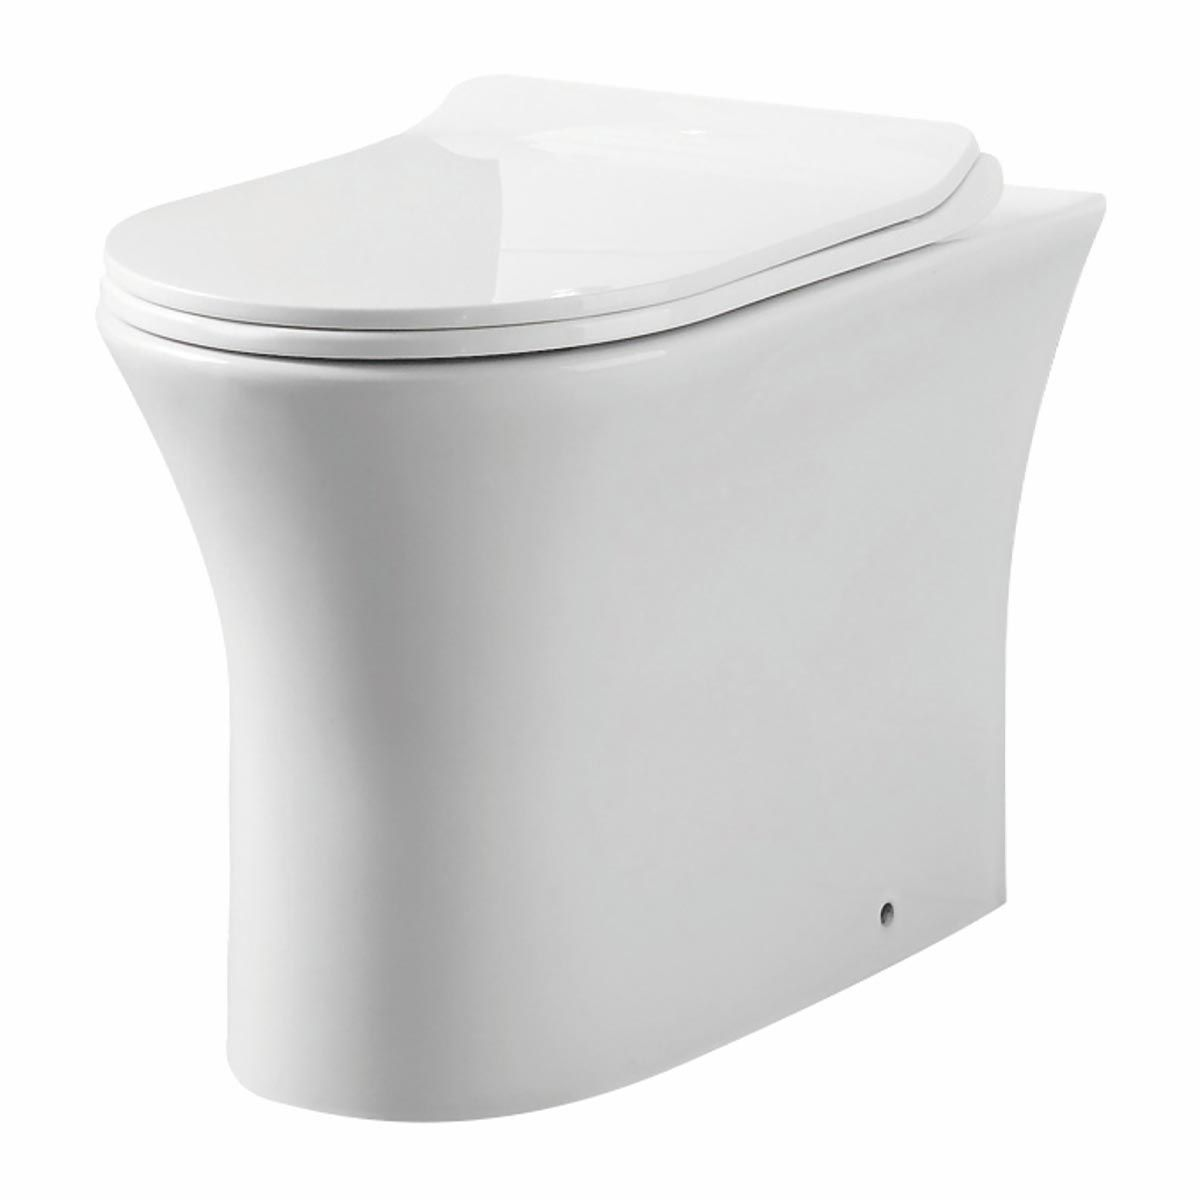 Manhattan Deia Gloss White Rimless Comfort Height Back to Wall Pan with Soft Close Seat